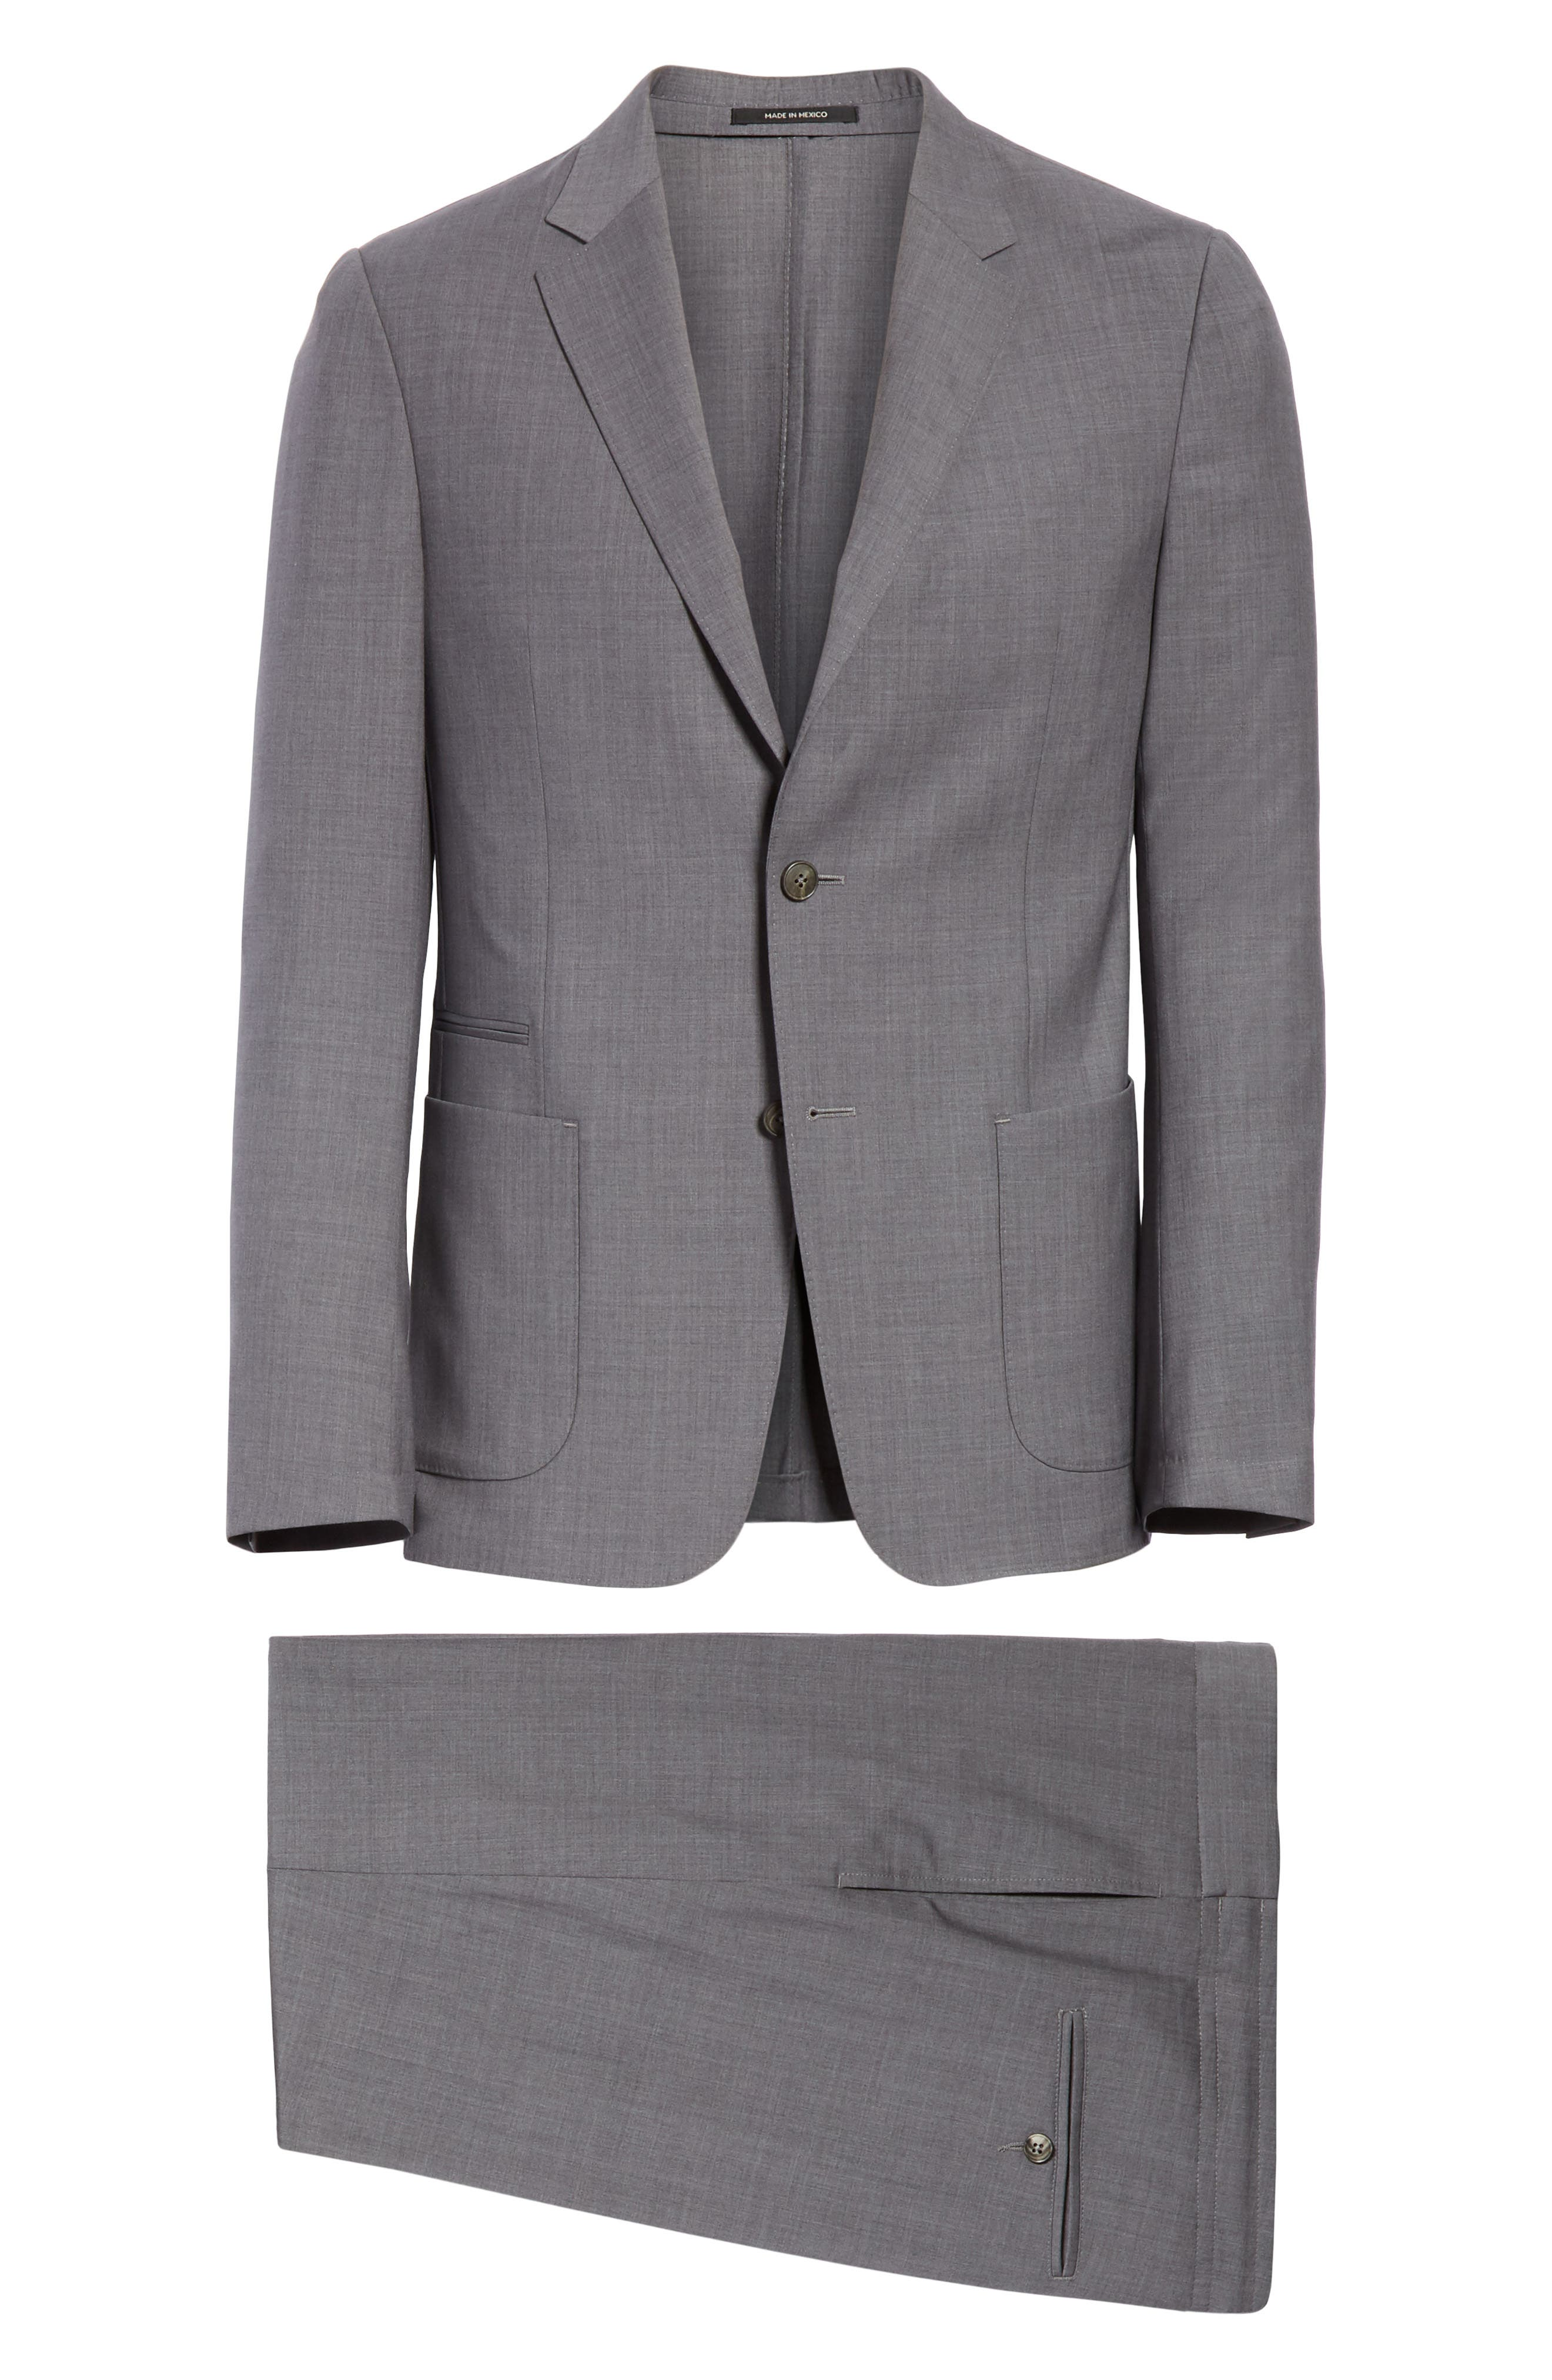 TECHMERINO<sup>™</sup> Wash & Go Trim Fit Solid Wool Suit,                             Alternate thumbnail 7, color,                             Solid Grey